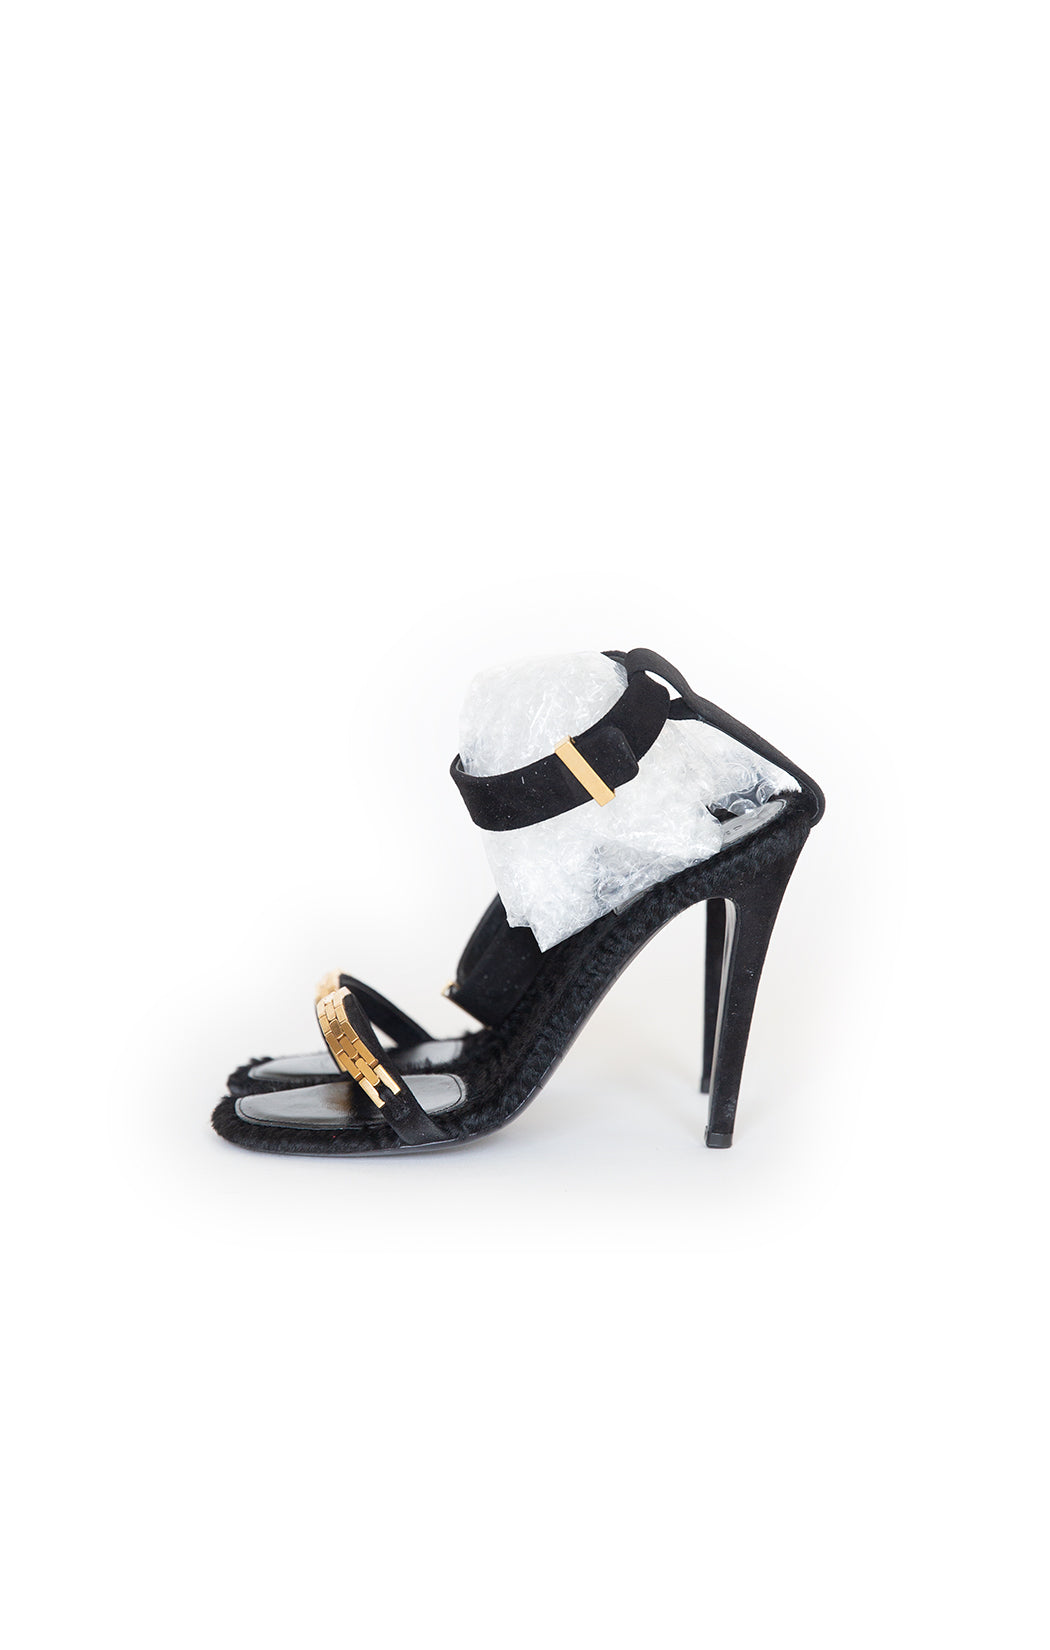 Side view of CELINE High Heeled Sandal Size: US 7